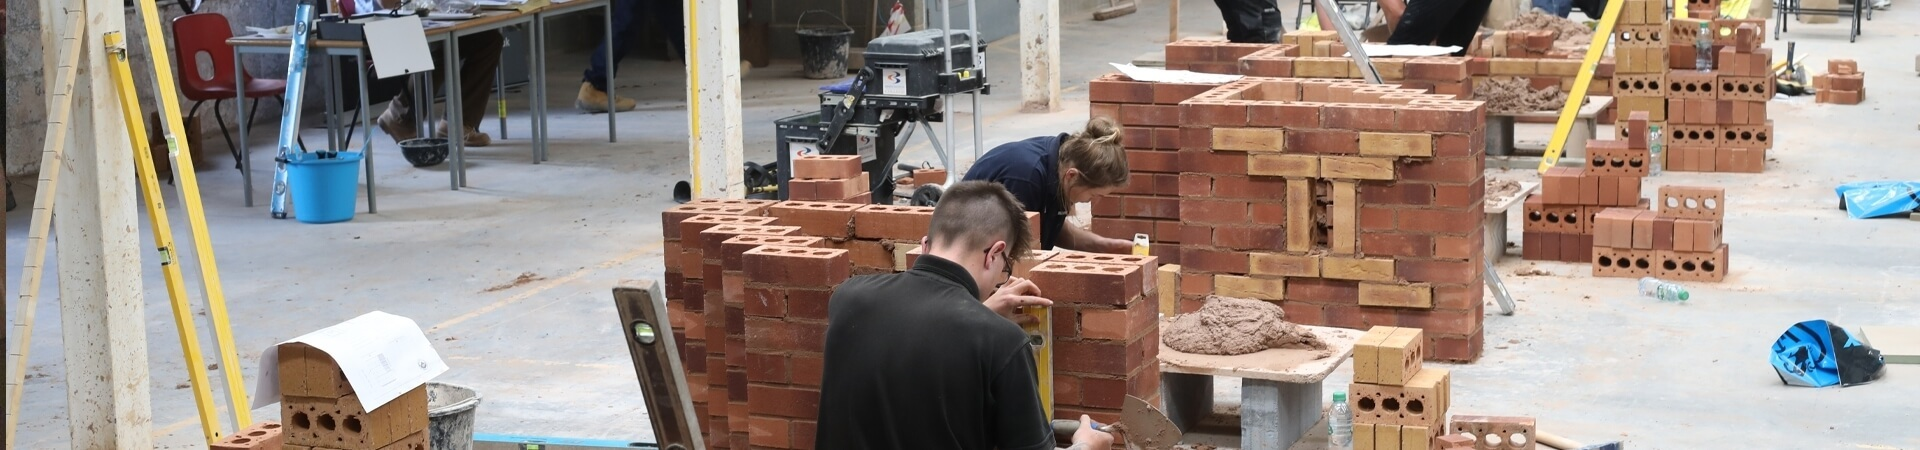 Students learning bricklaying